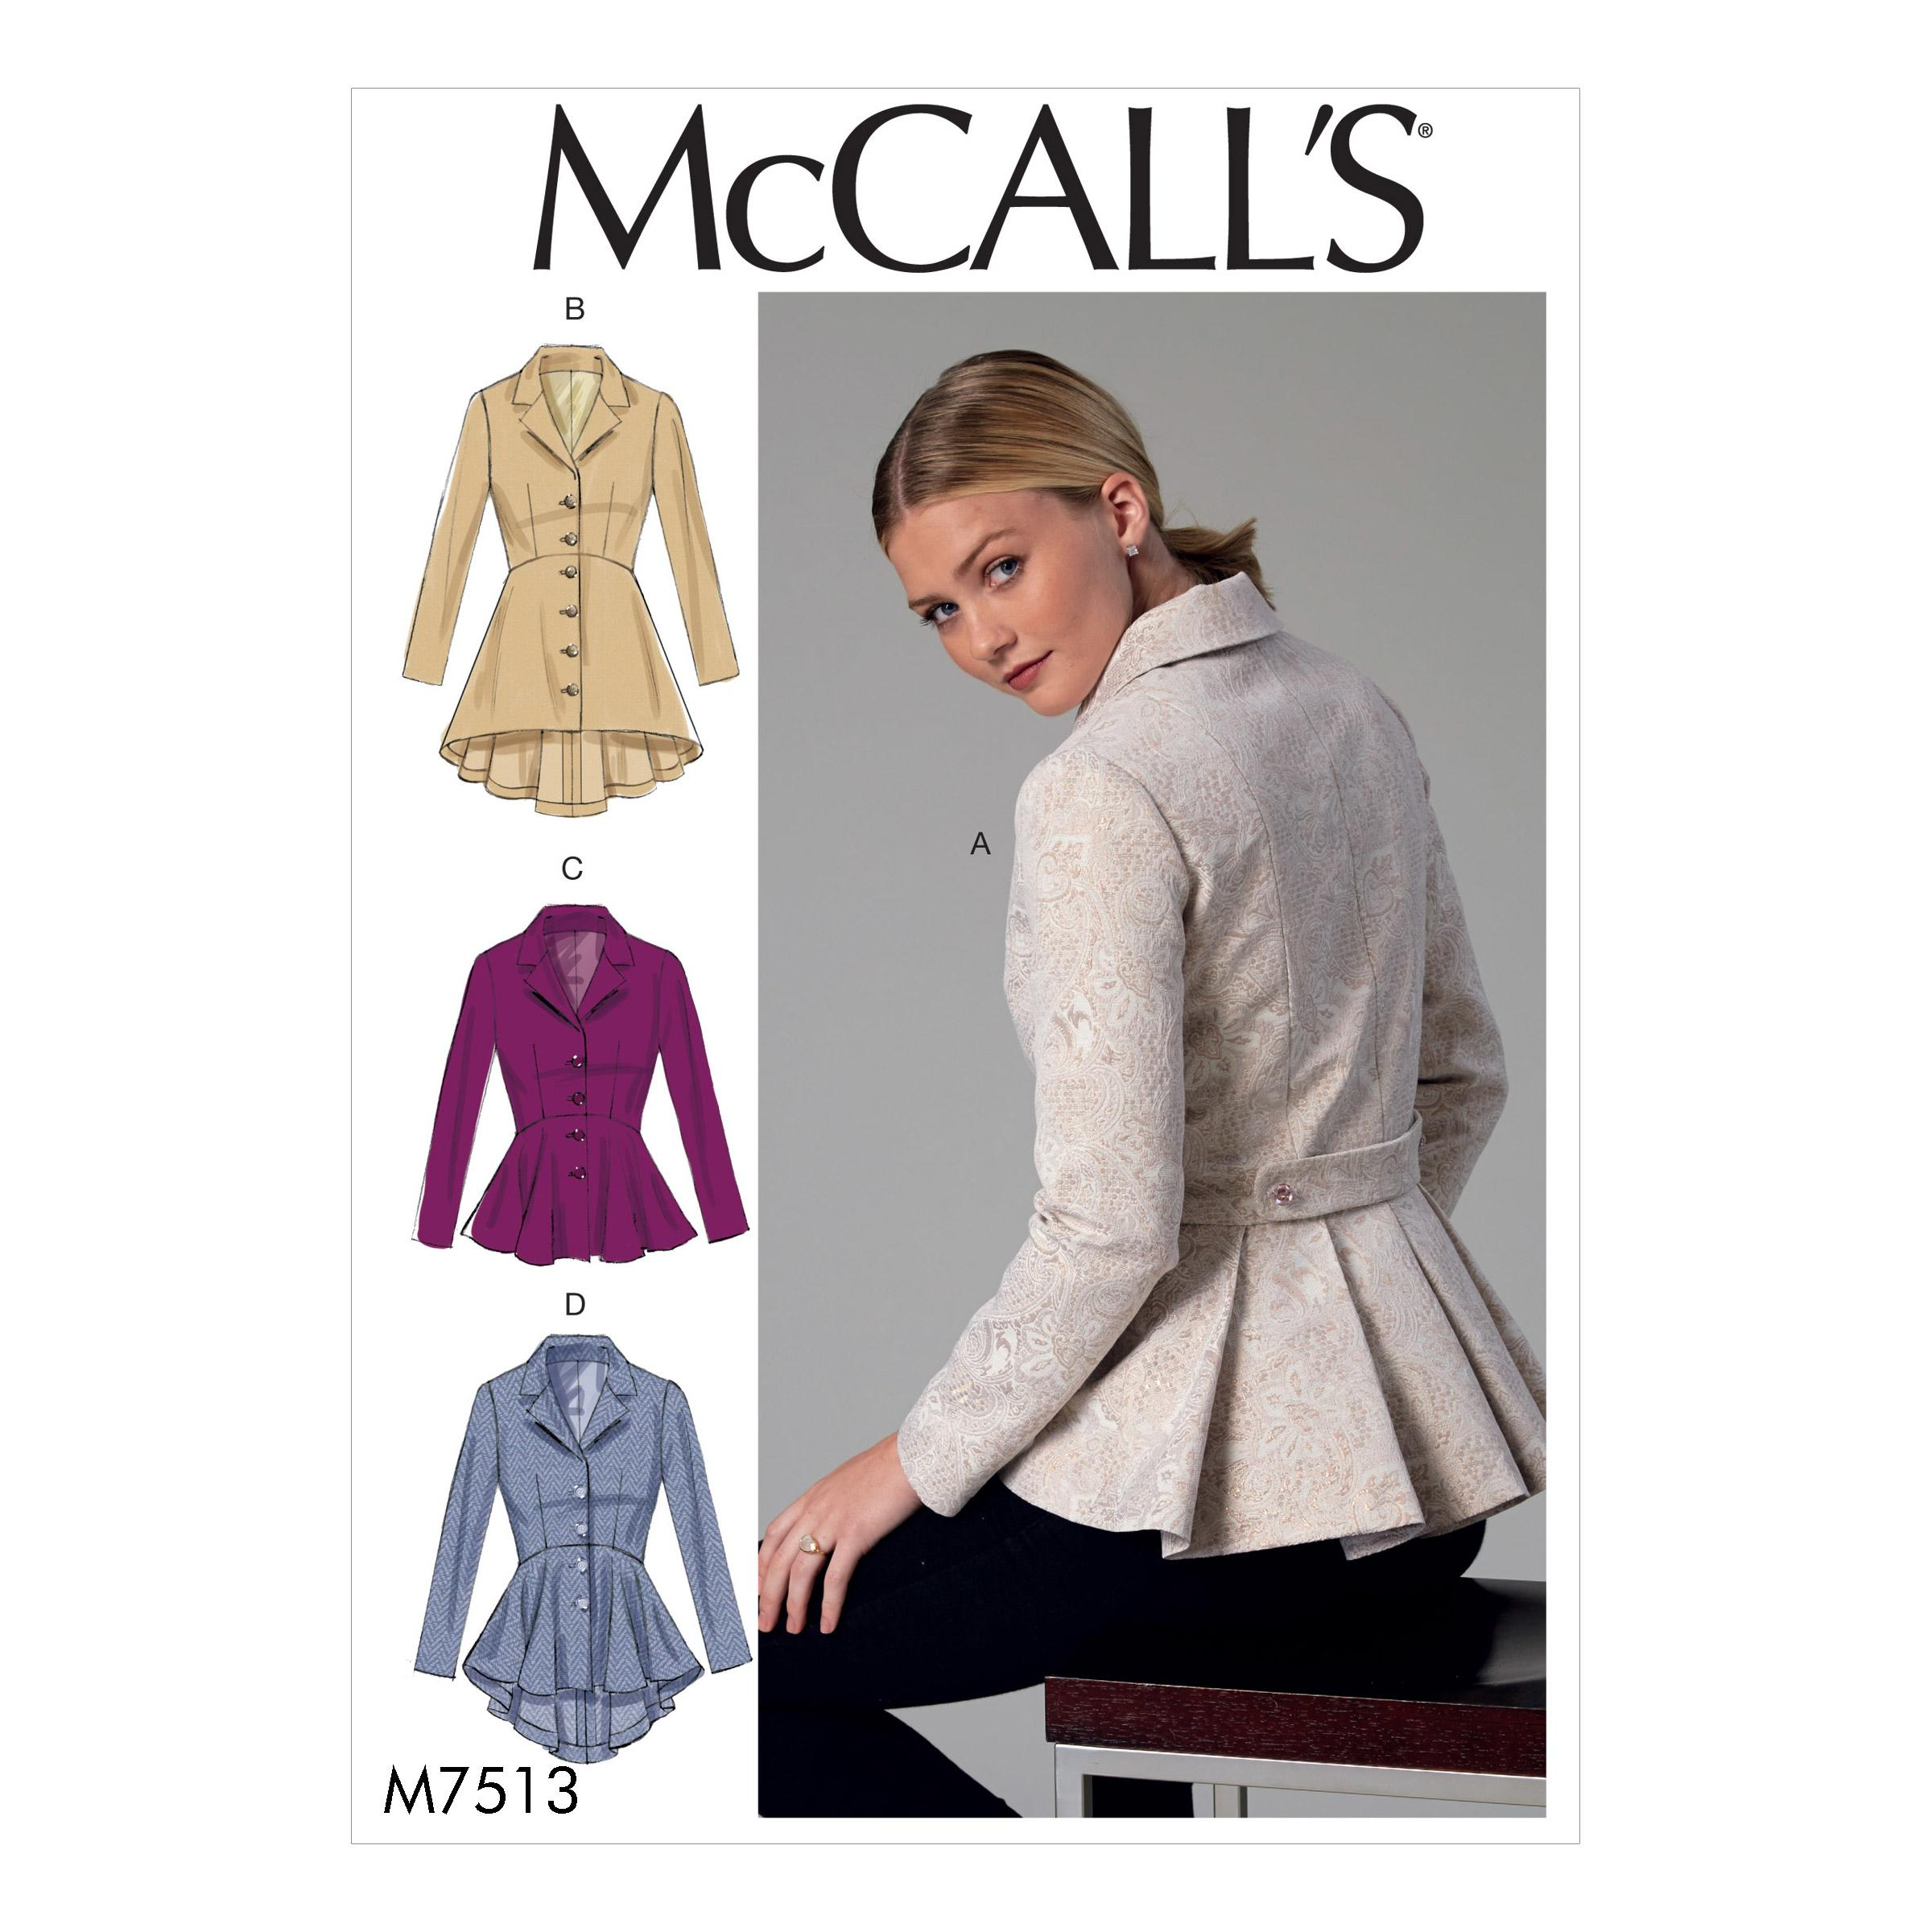 McCalls M7513 Misses Jackets & Vests